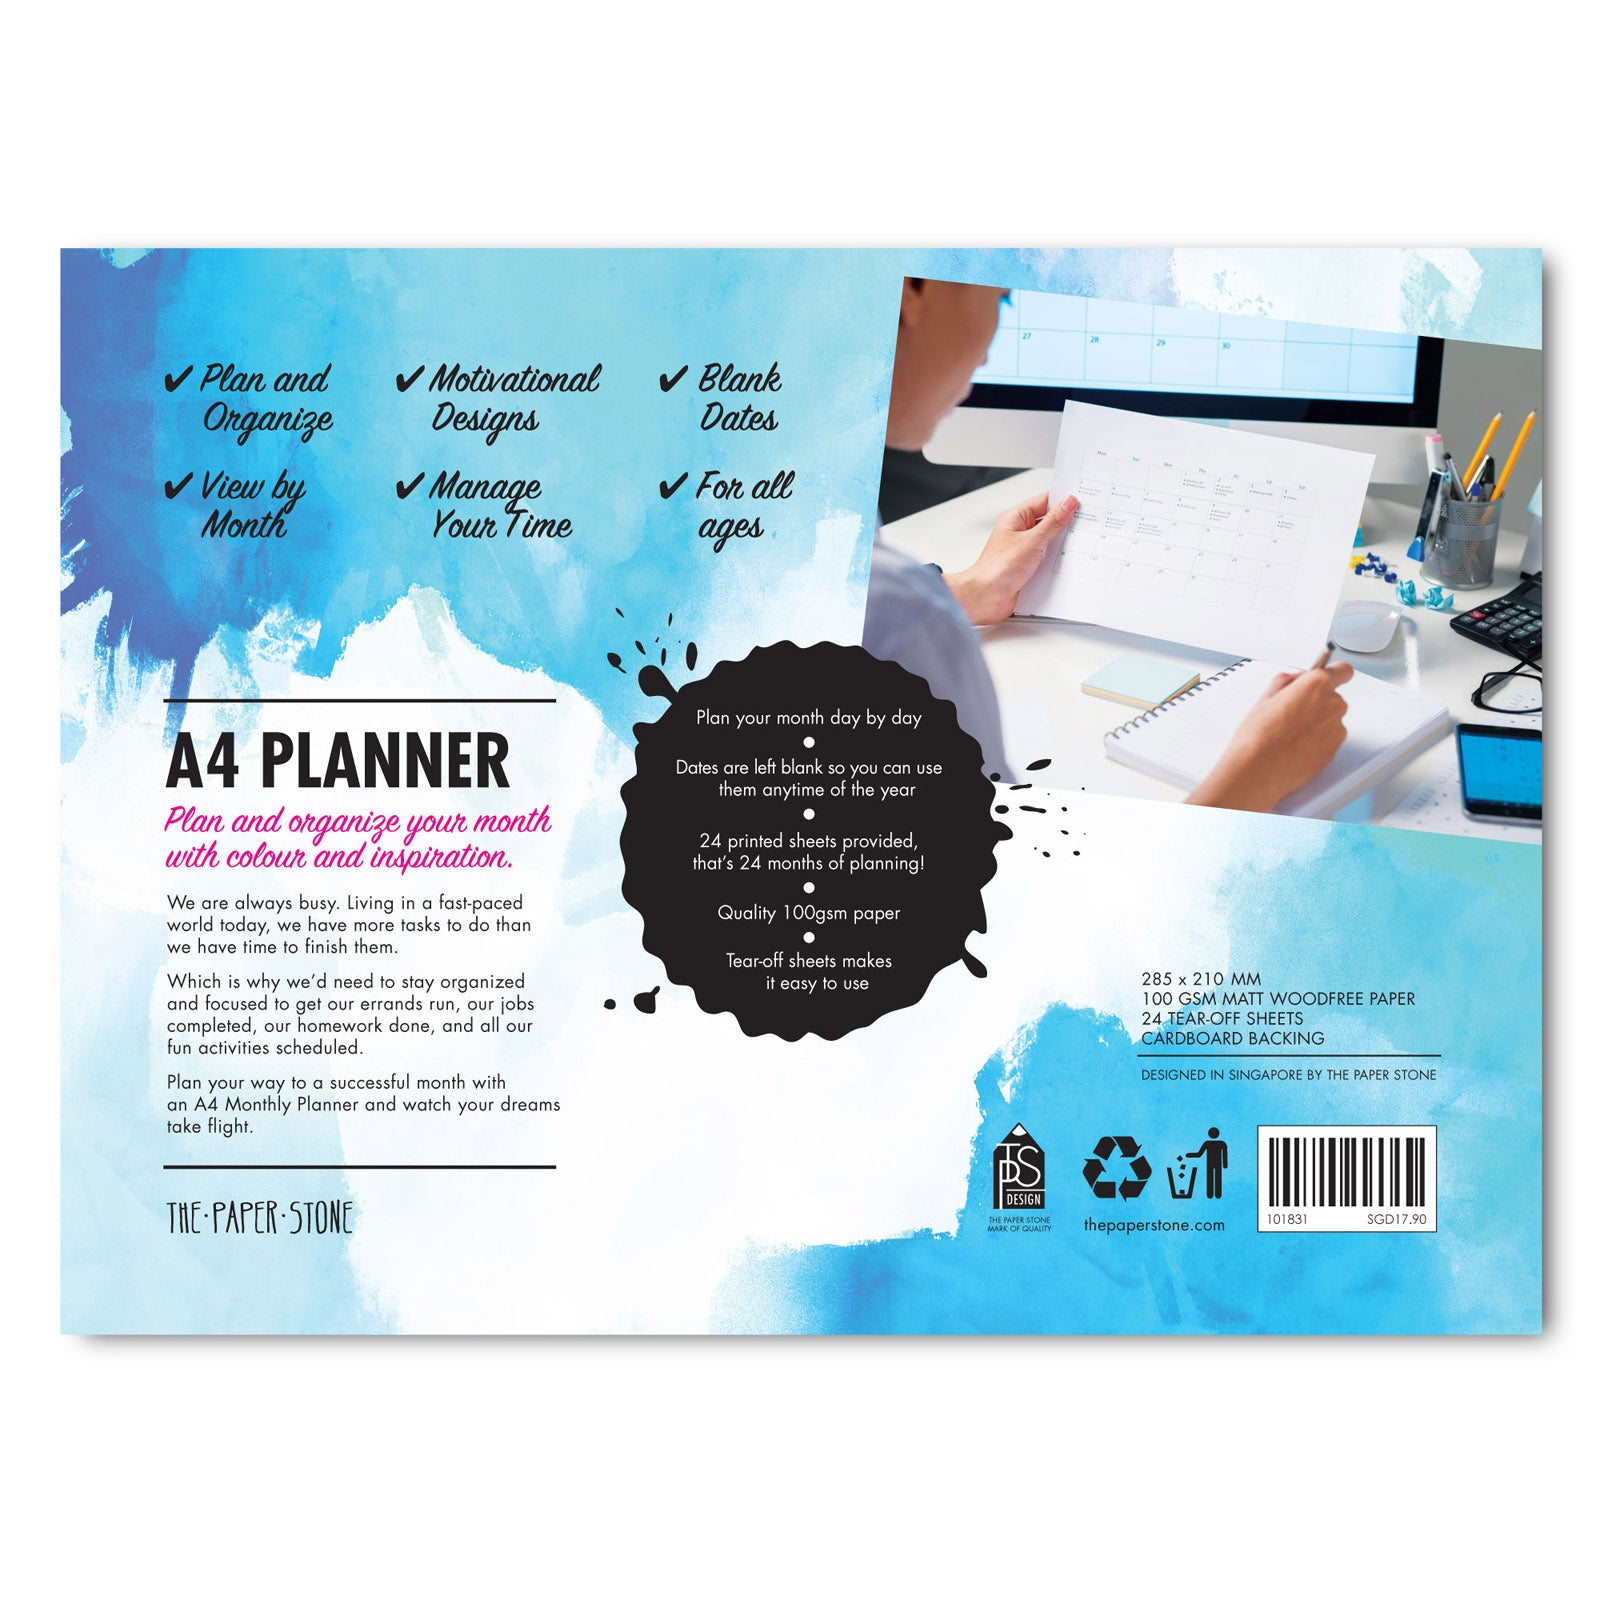 A4 Planner - Dreams And Plans Patterns